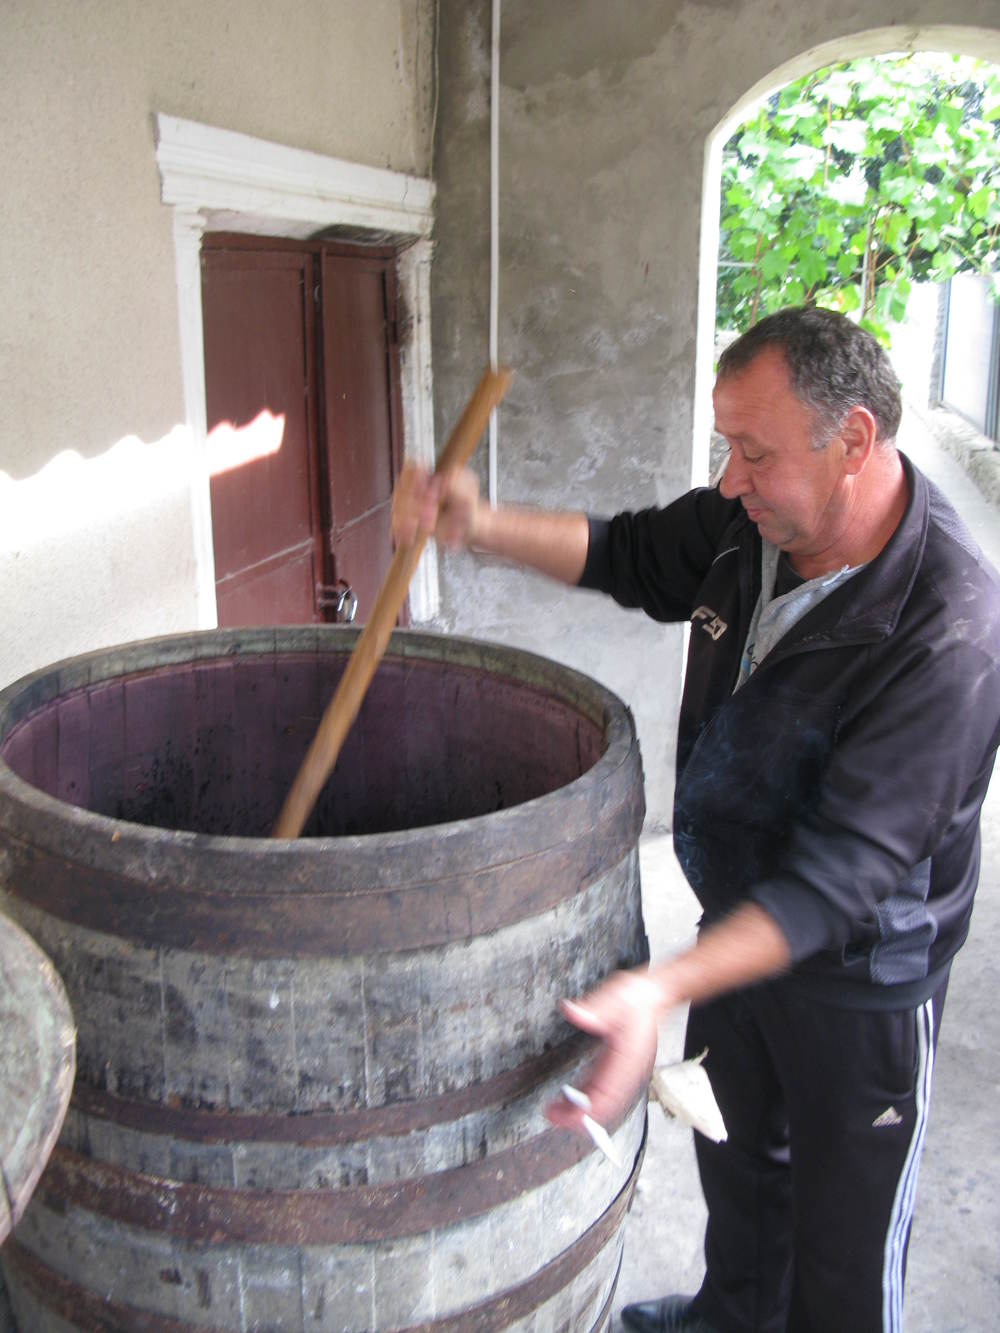 Punching Down the Homemade Red Wine